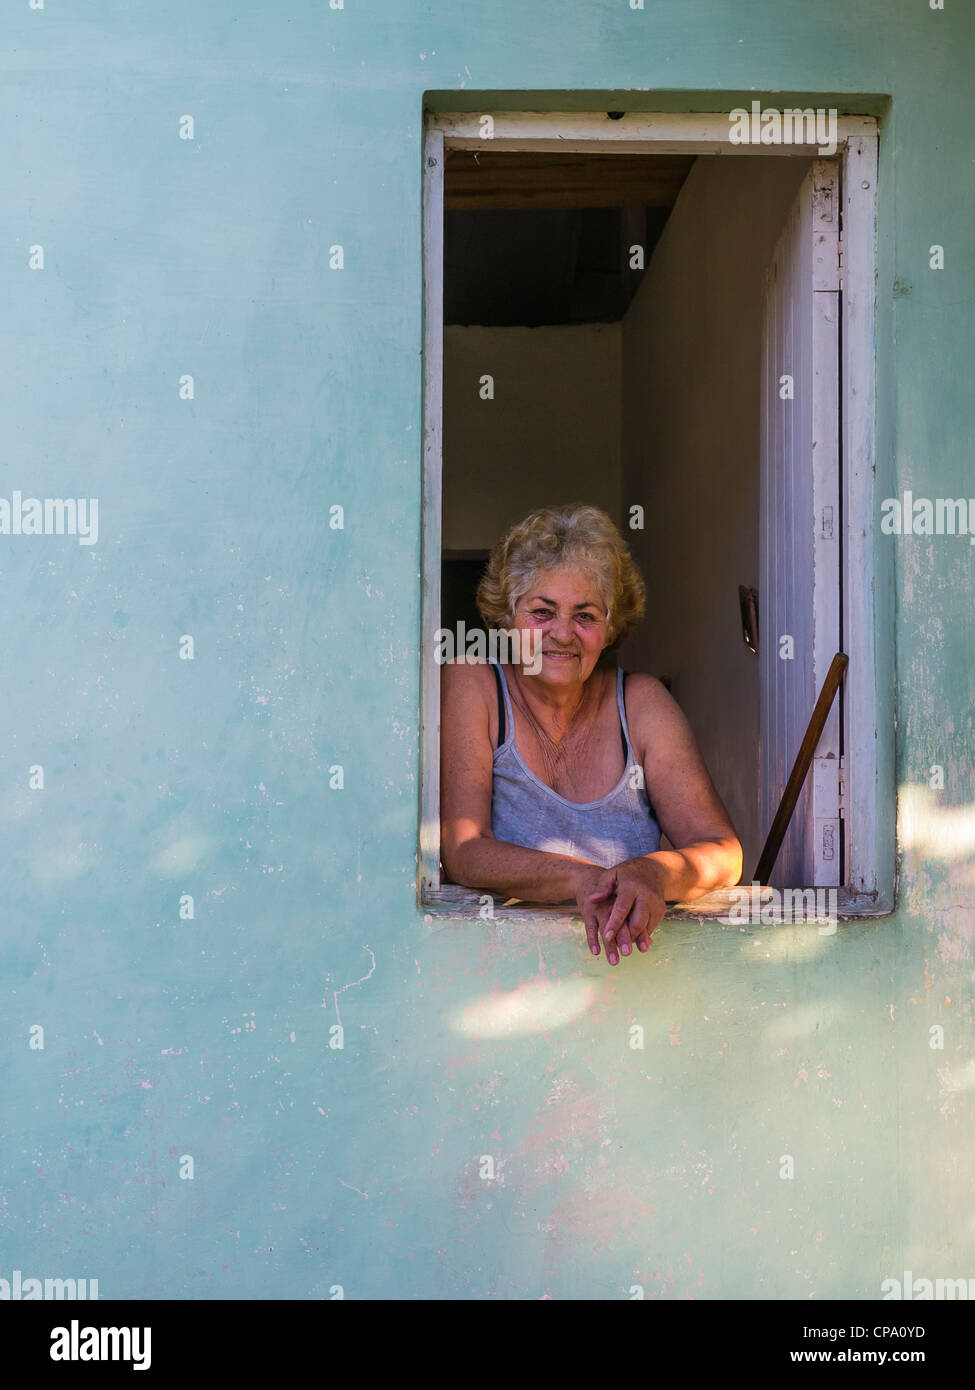 A 60-70 year old Cuban woman looks out of her window and leans her arms on the window sill in Viñales, Cuba. Stock Photo